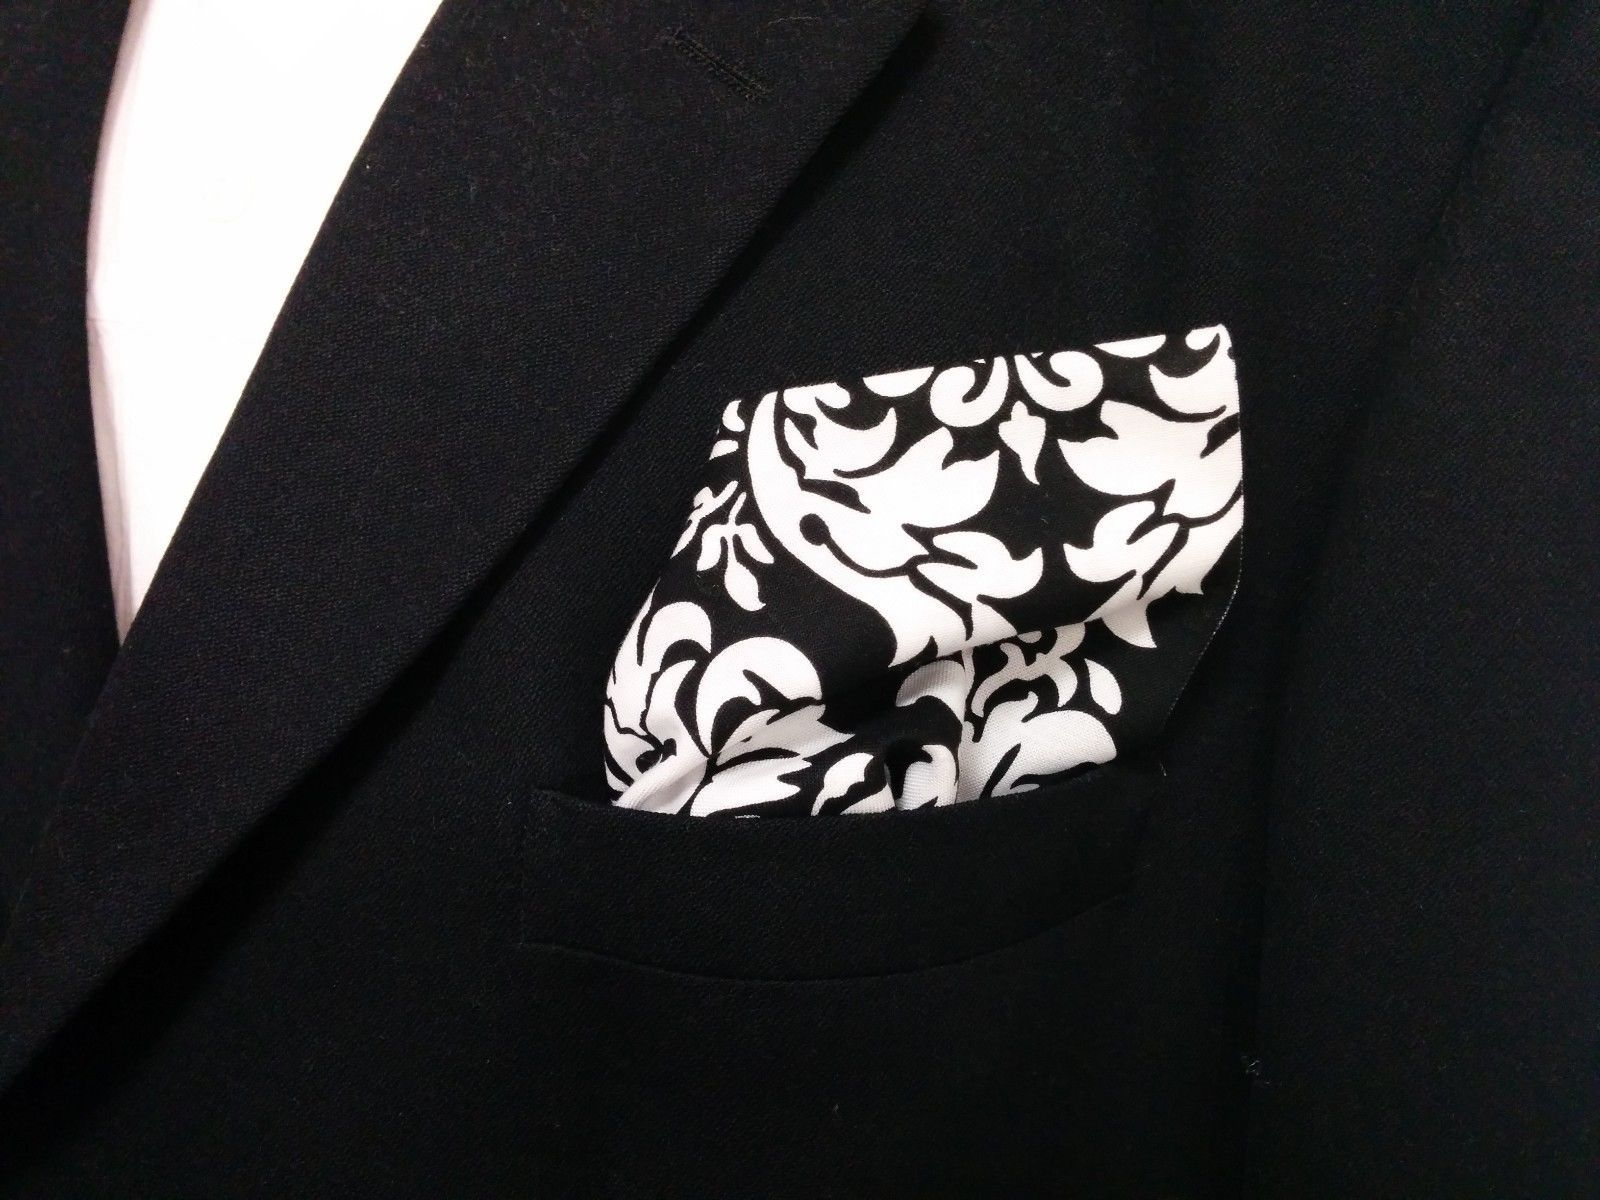 Damask Hanky Pocket Square Tuxedo Dandy Black White Wedding Bridal Groomsmen image 3